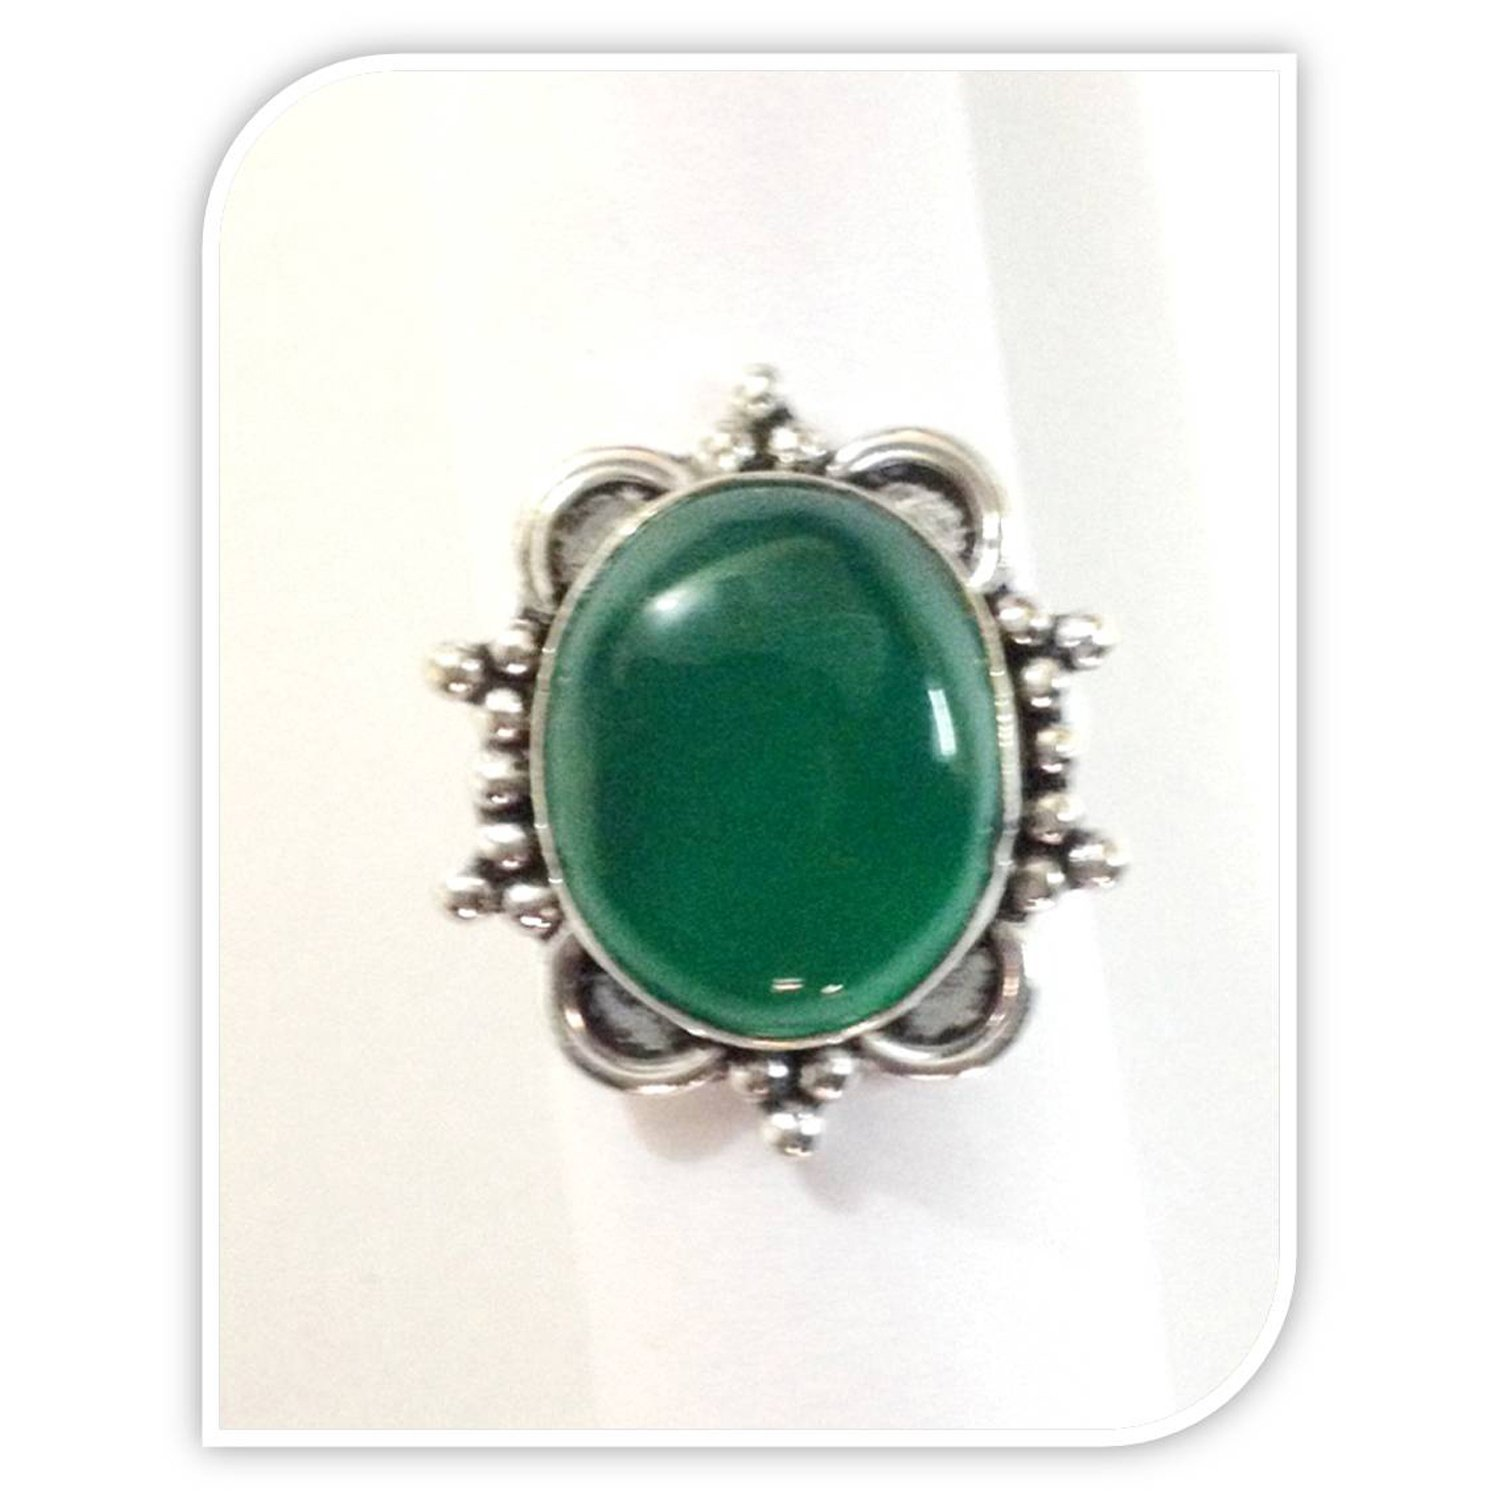 en ring listing ringsimple solid gold malachite rings fullxfull green simple il stackable stacking zoom rdvk gemstone semiprecious summer sale